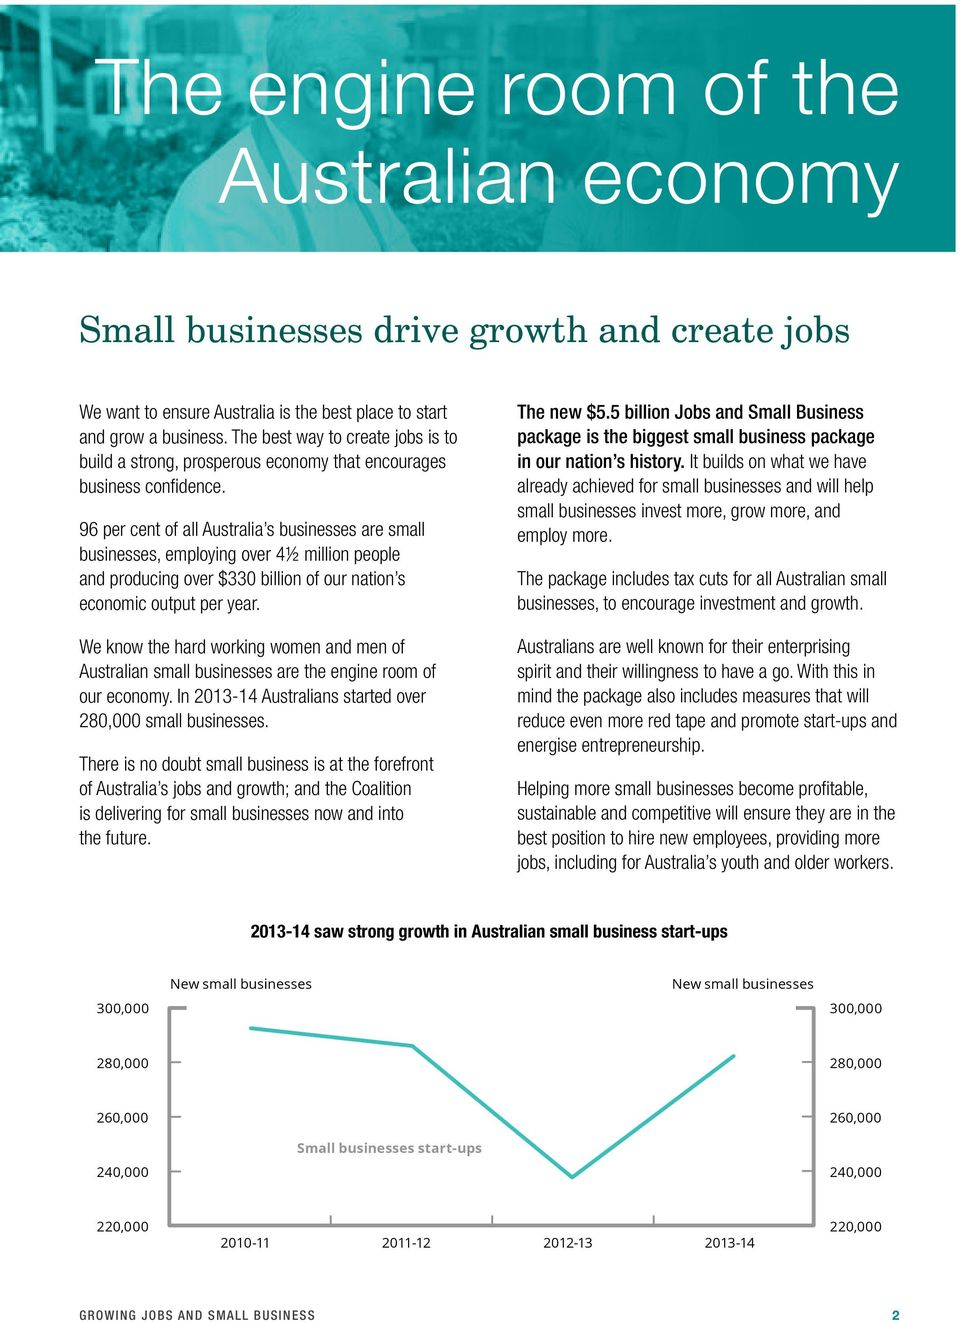 96 per cent of all Australia s businesses are small businesses, employing over 4½ million people and producing over $330 billion of our nation s economic output per year.